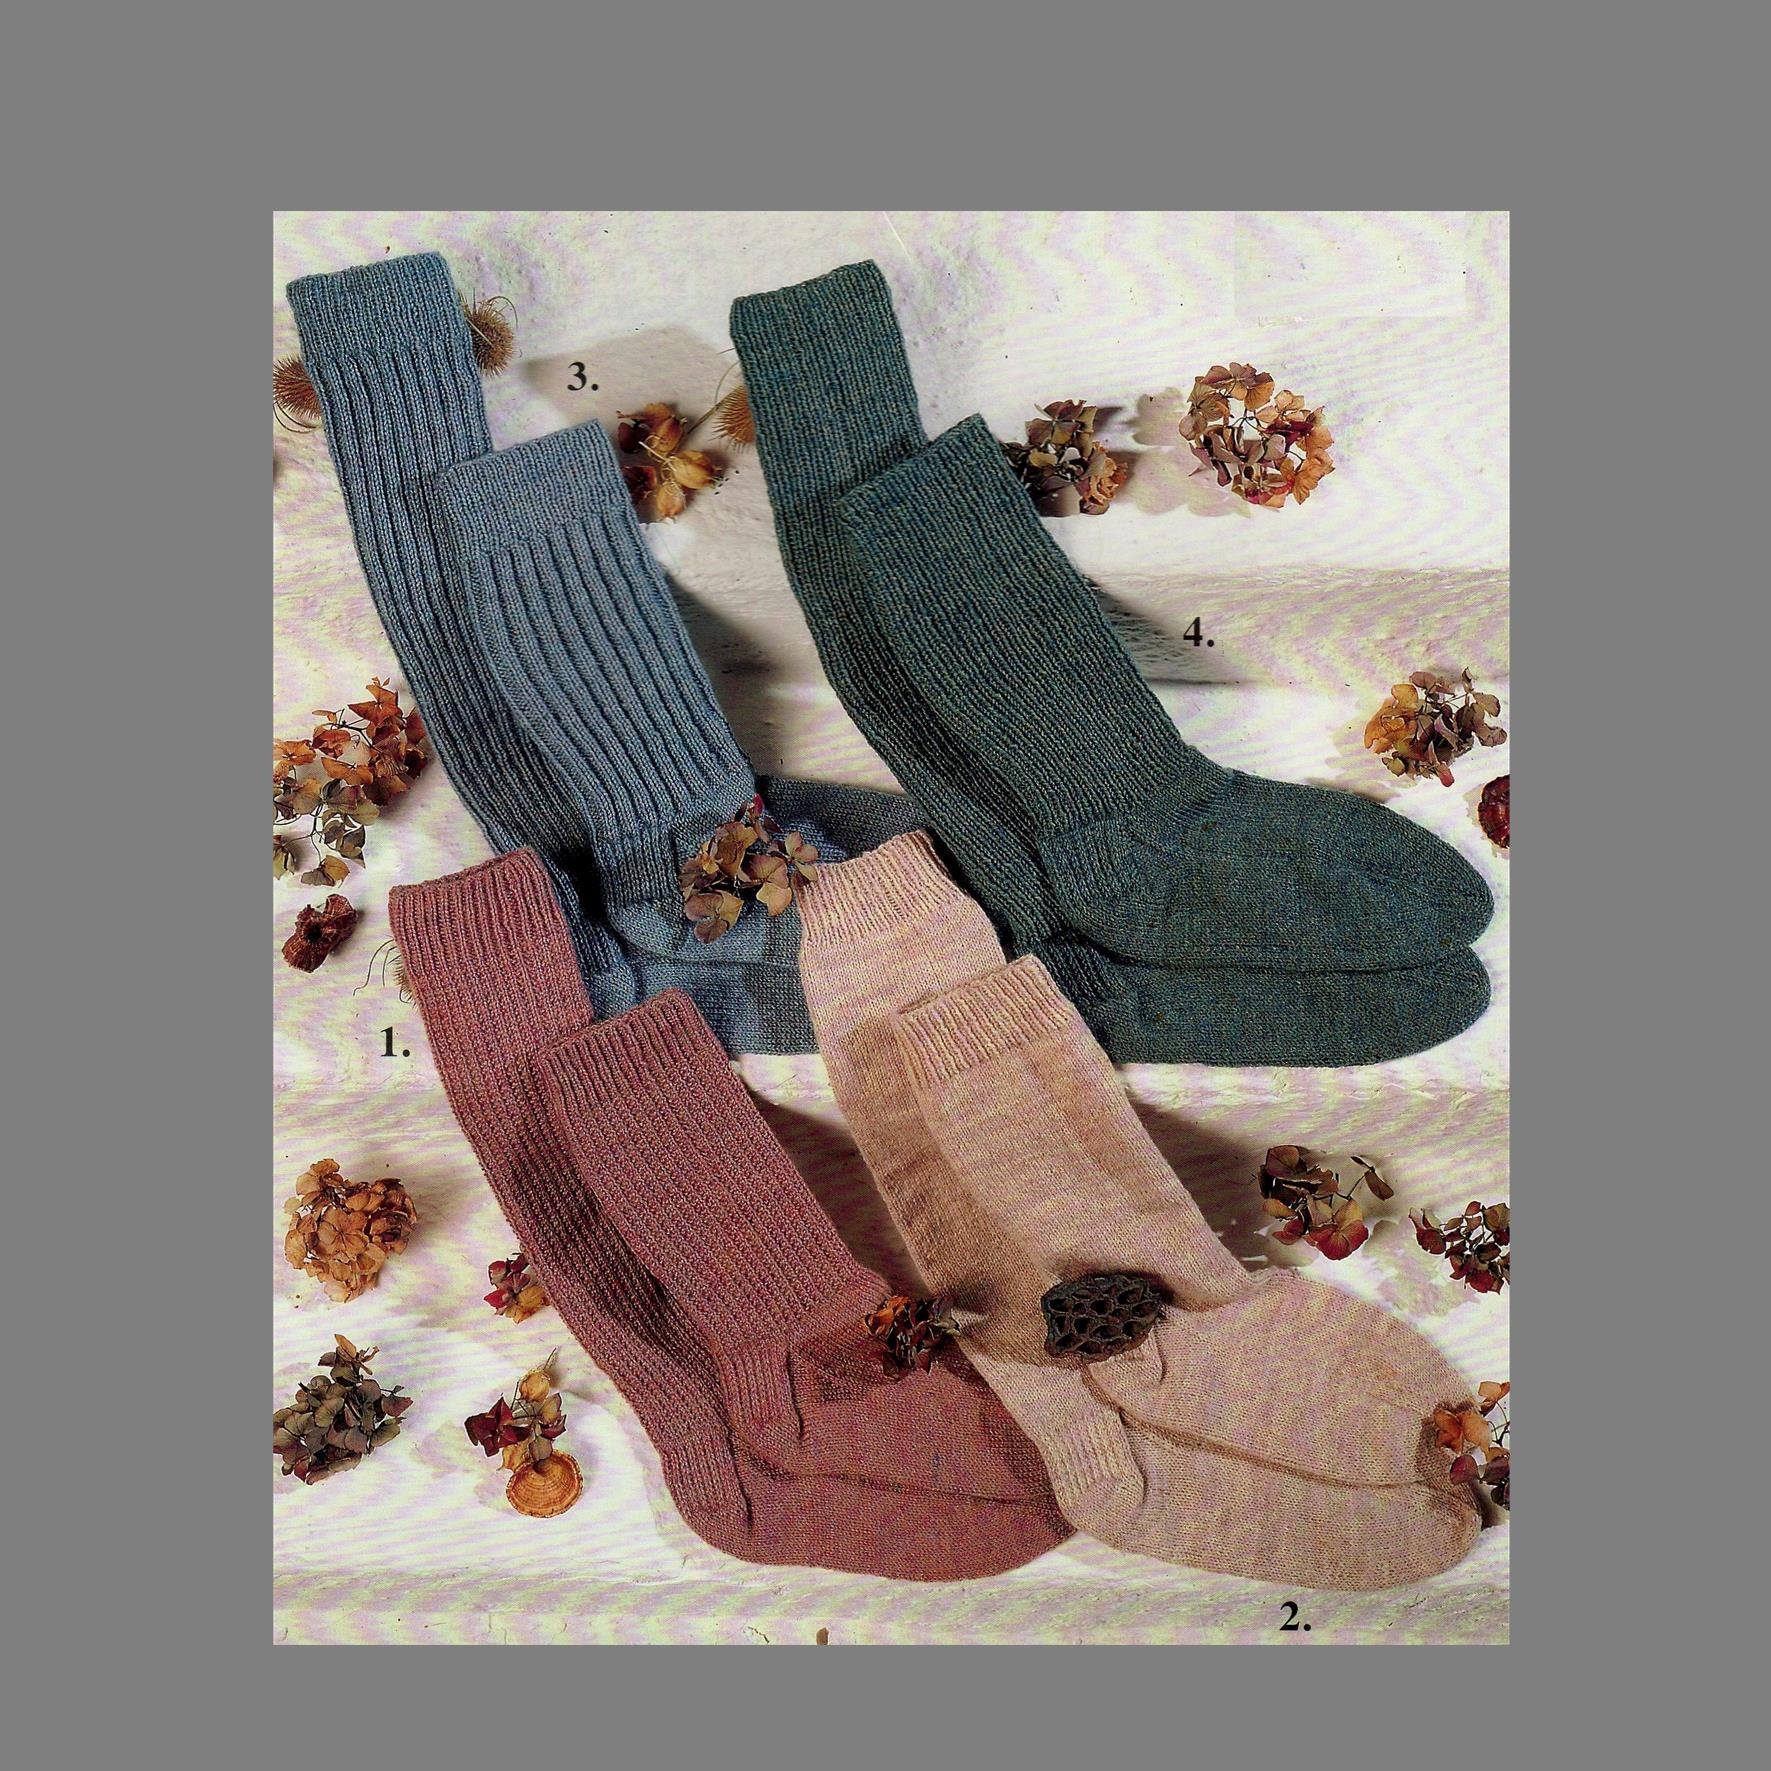 Free Knitting Patterns For Socks On Four Needles Pdf Knitting Pattern 4 Ply Socks In 4 Styles 3 Sizes Socks Knitted On Four Needles Pdf Instant Download Post Free Knitting Patterns